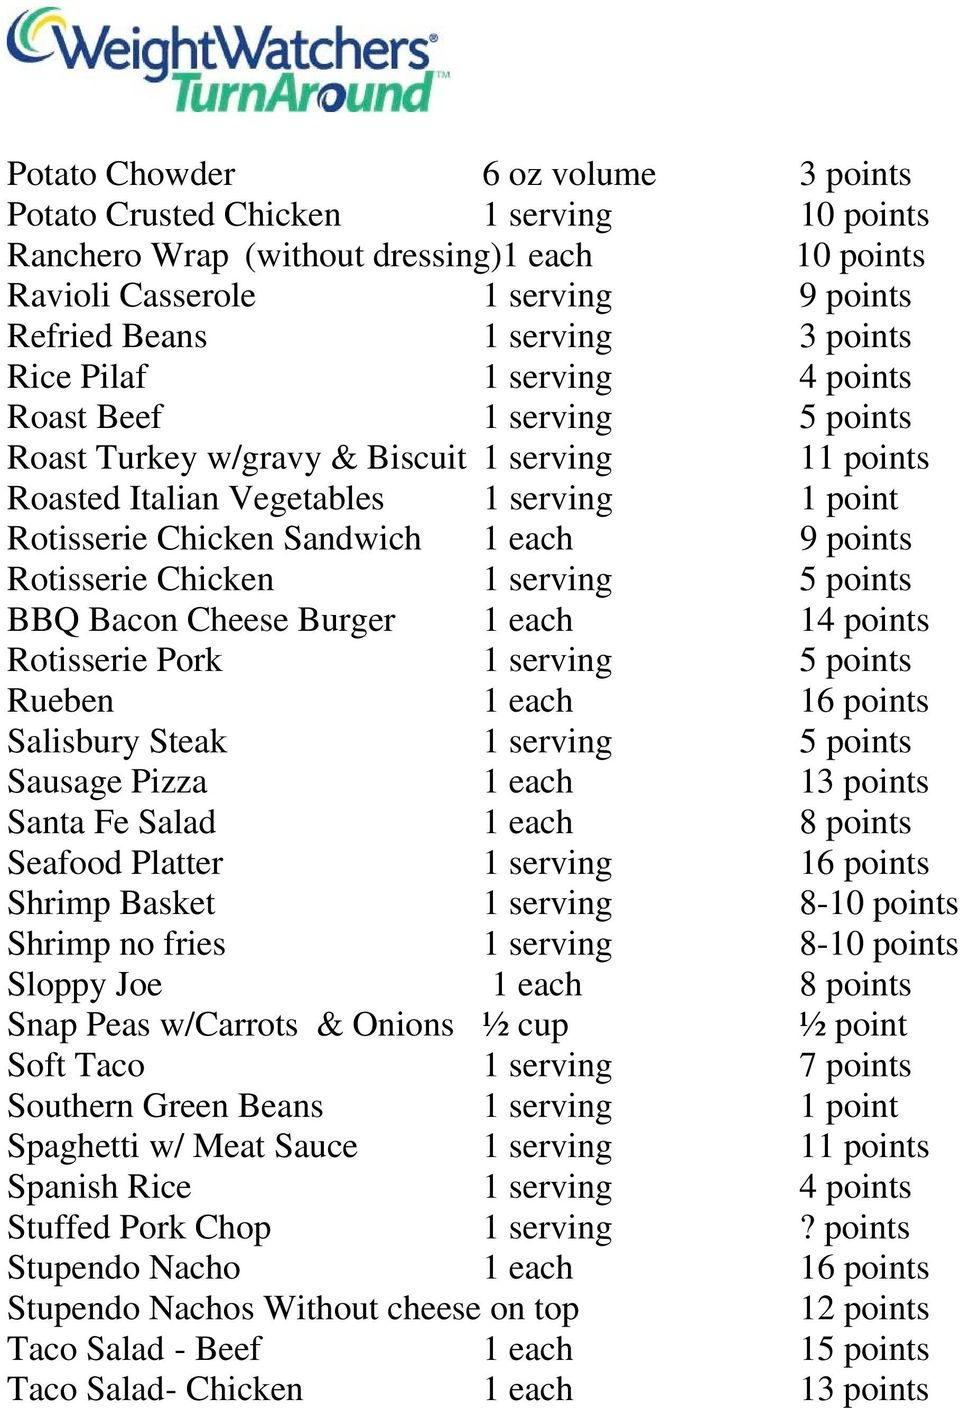 Rotisserie Chicken 1 serving 5 points BBQ Bacon Cheese Burger 1 each 14 points Rotisserie Pork 1 serving 5 points Rueben 1 each 16 points Salisbury Steak 1 serving 5 points Sausage Pizza 1 each 13